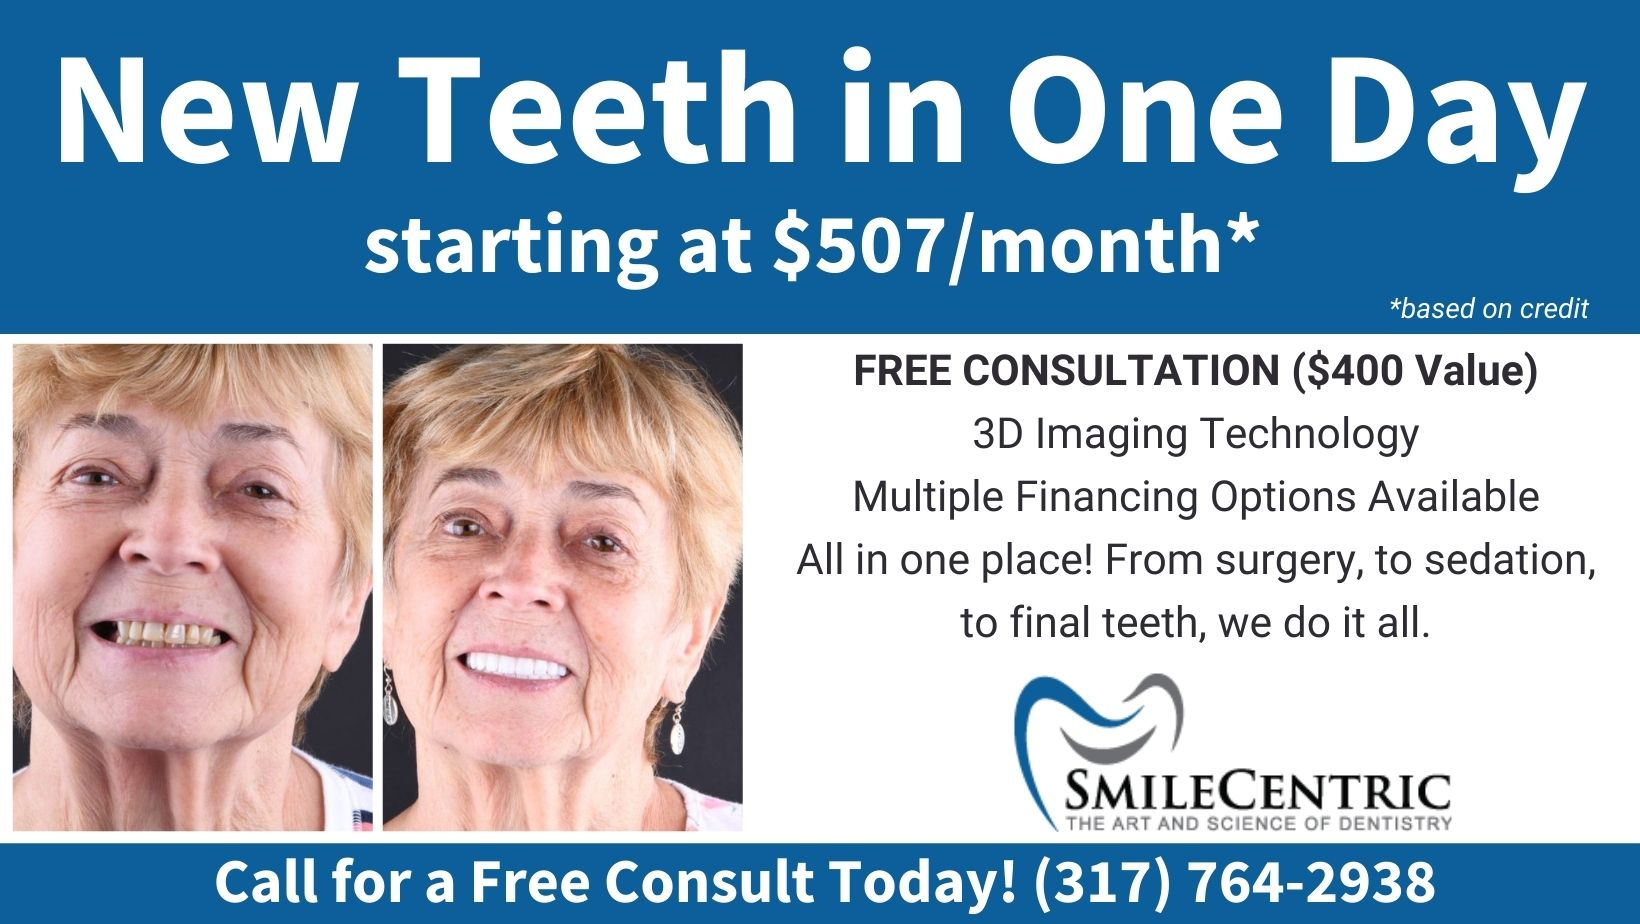 New teeth in One Day Starting at $507 per month